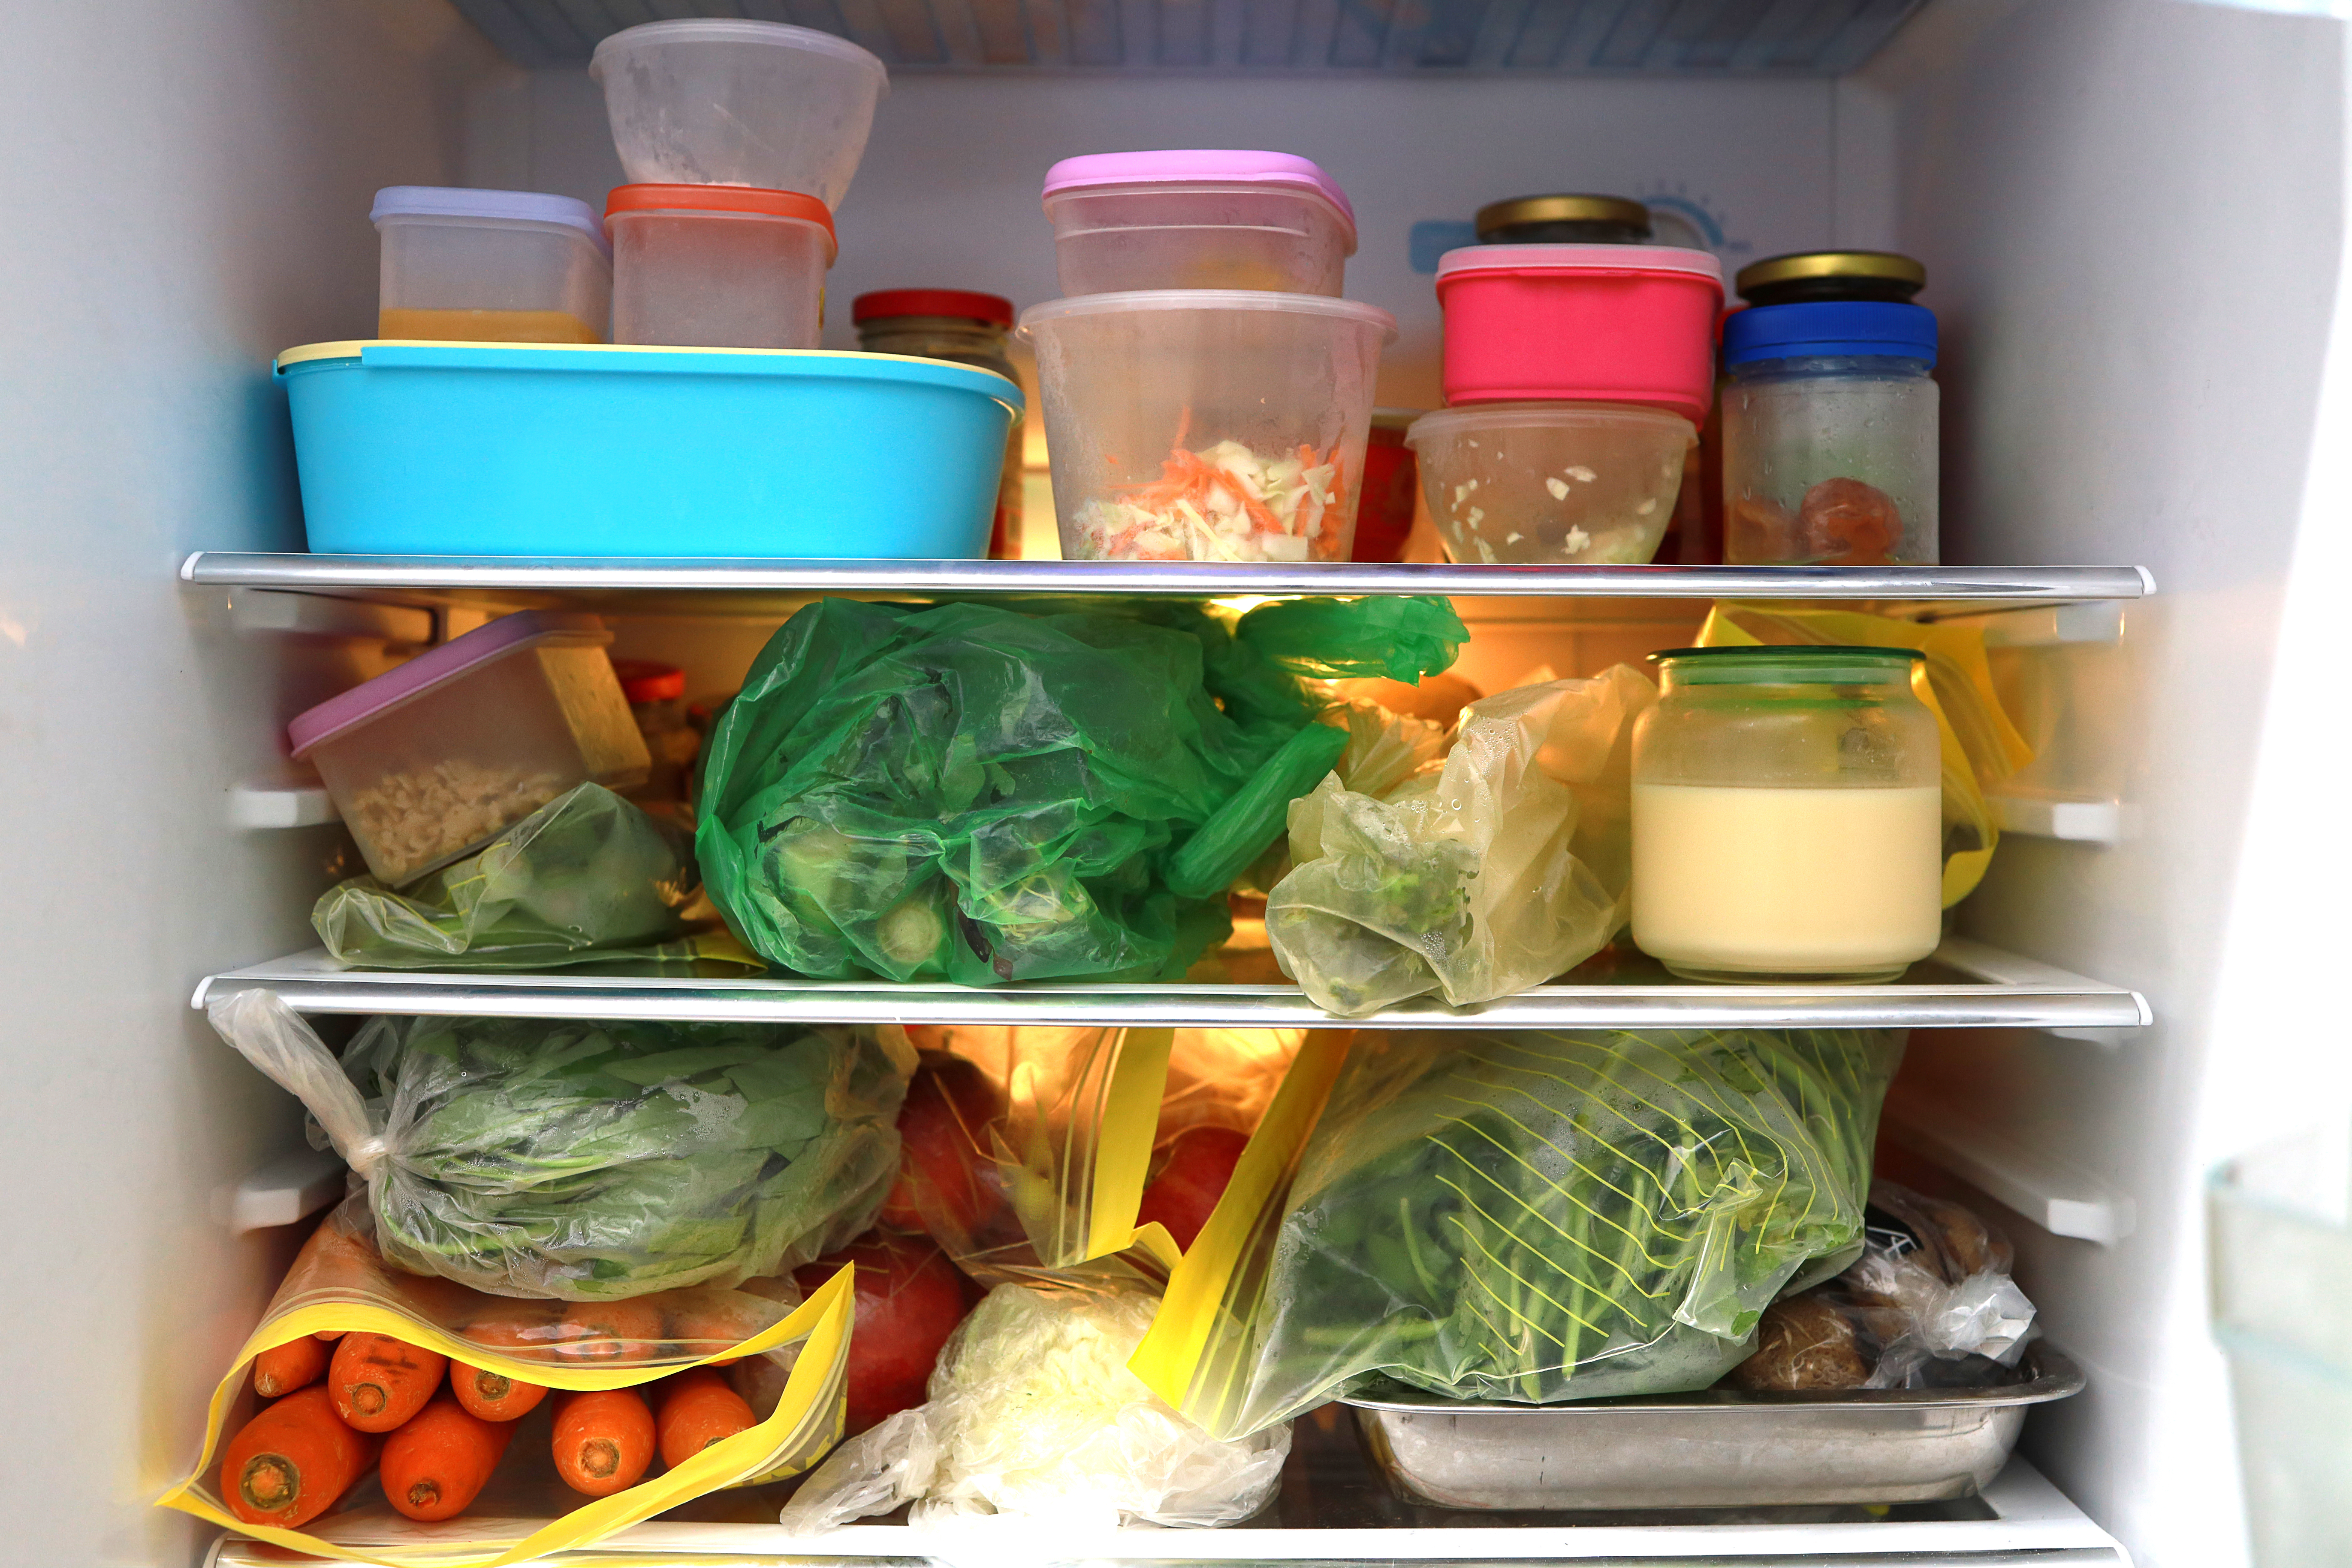 An open fridge with messy shelves